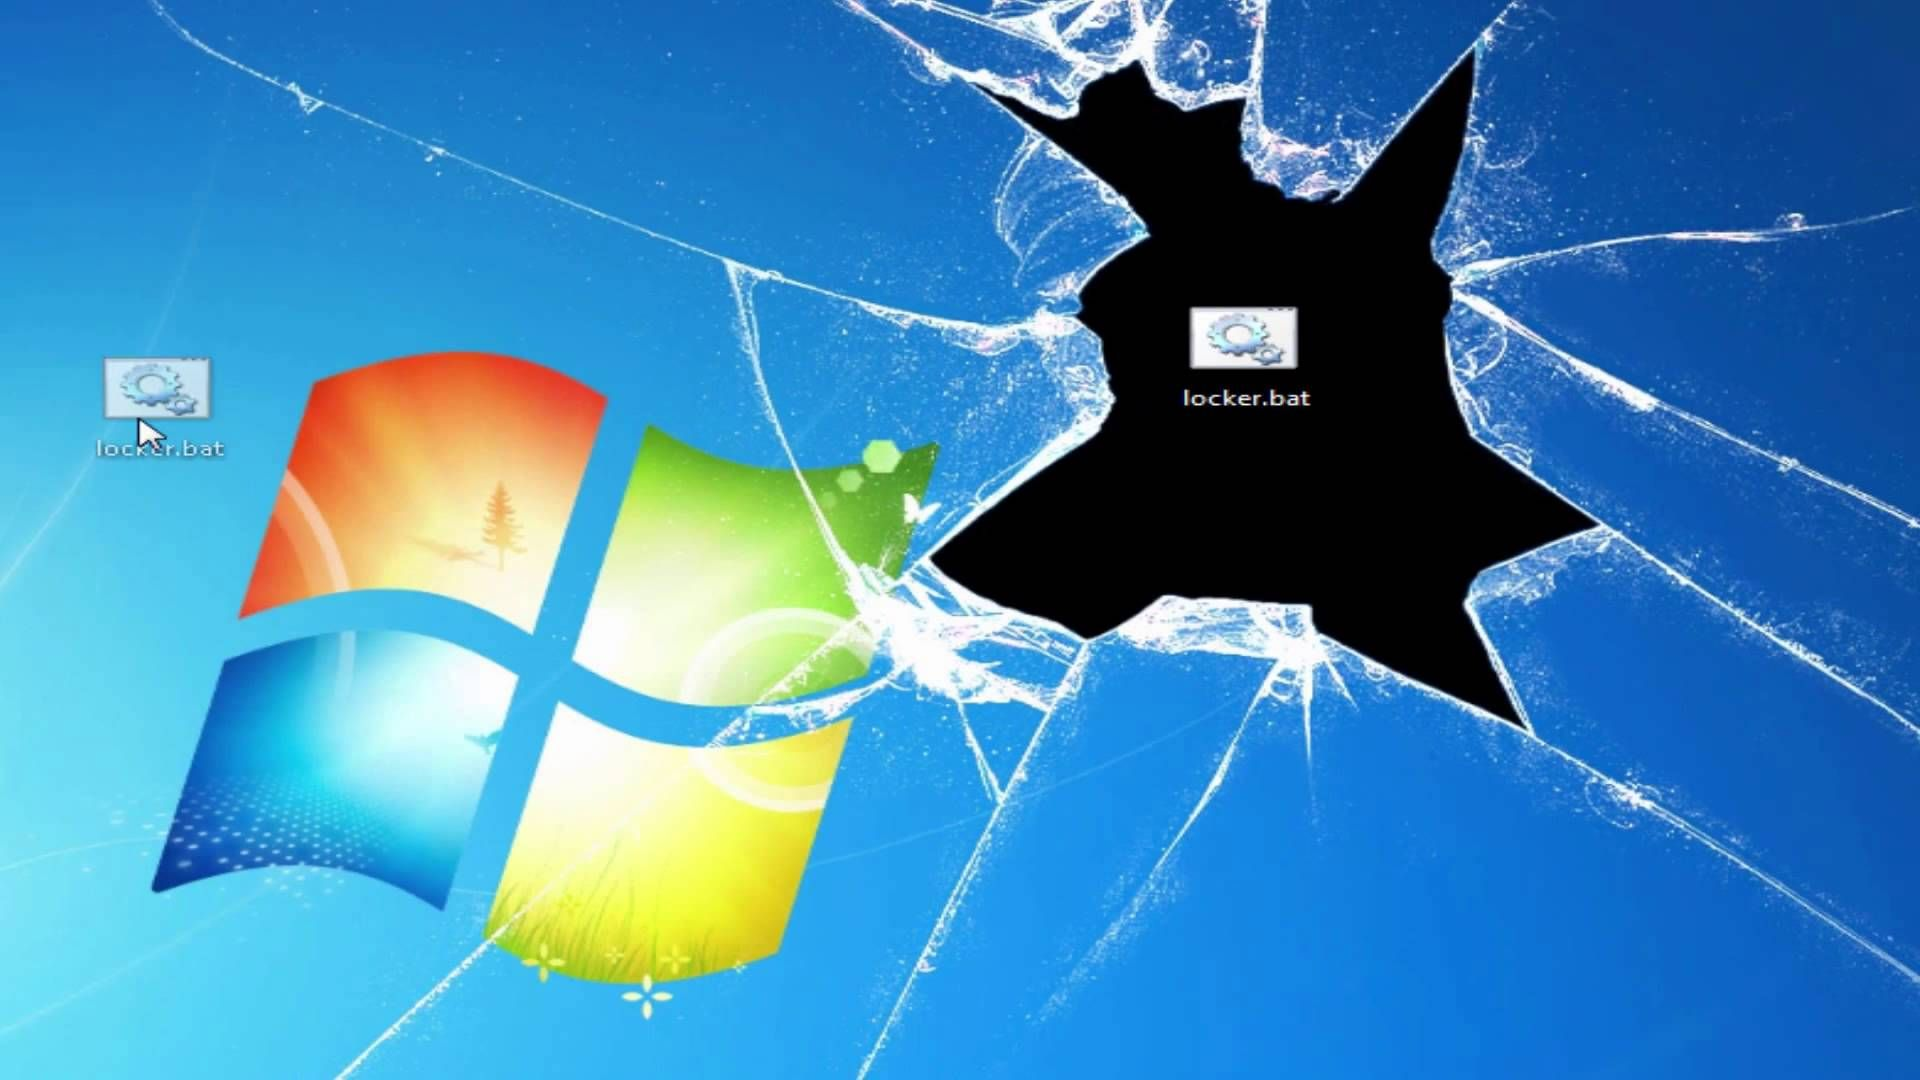 How To Lock A Folder Without Any Software Windows 8 Windows 7 Windows 10 Ur Computer Wallpaper Desktop Wallpapers Windows Wallpaper Broken Screen Wallpaper